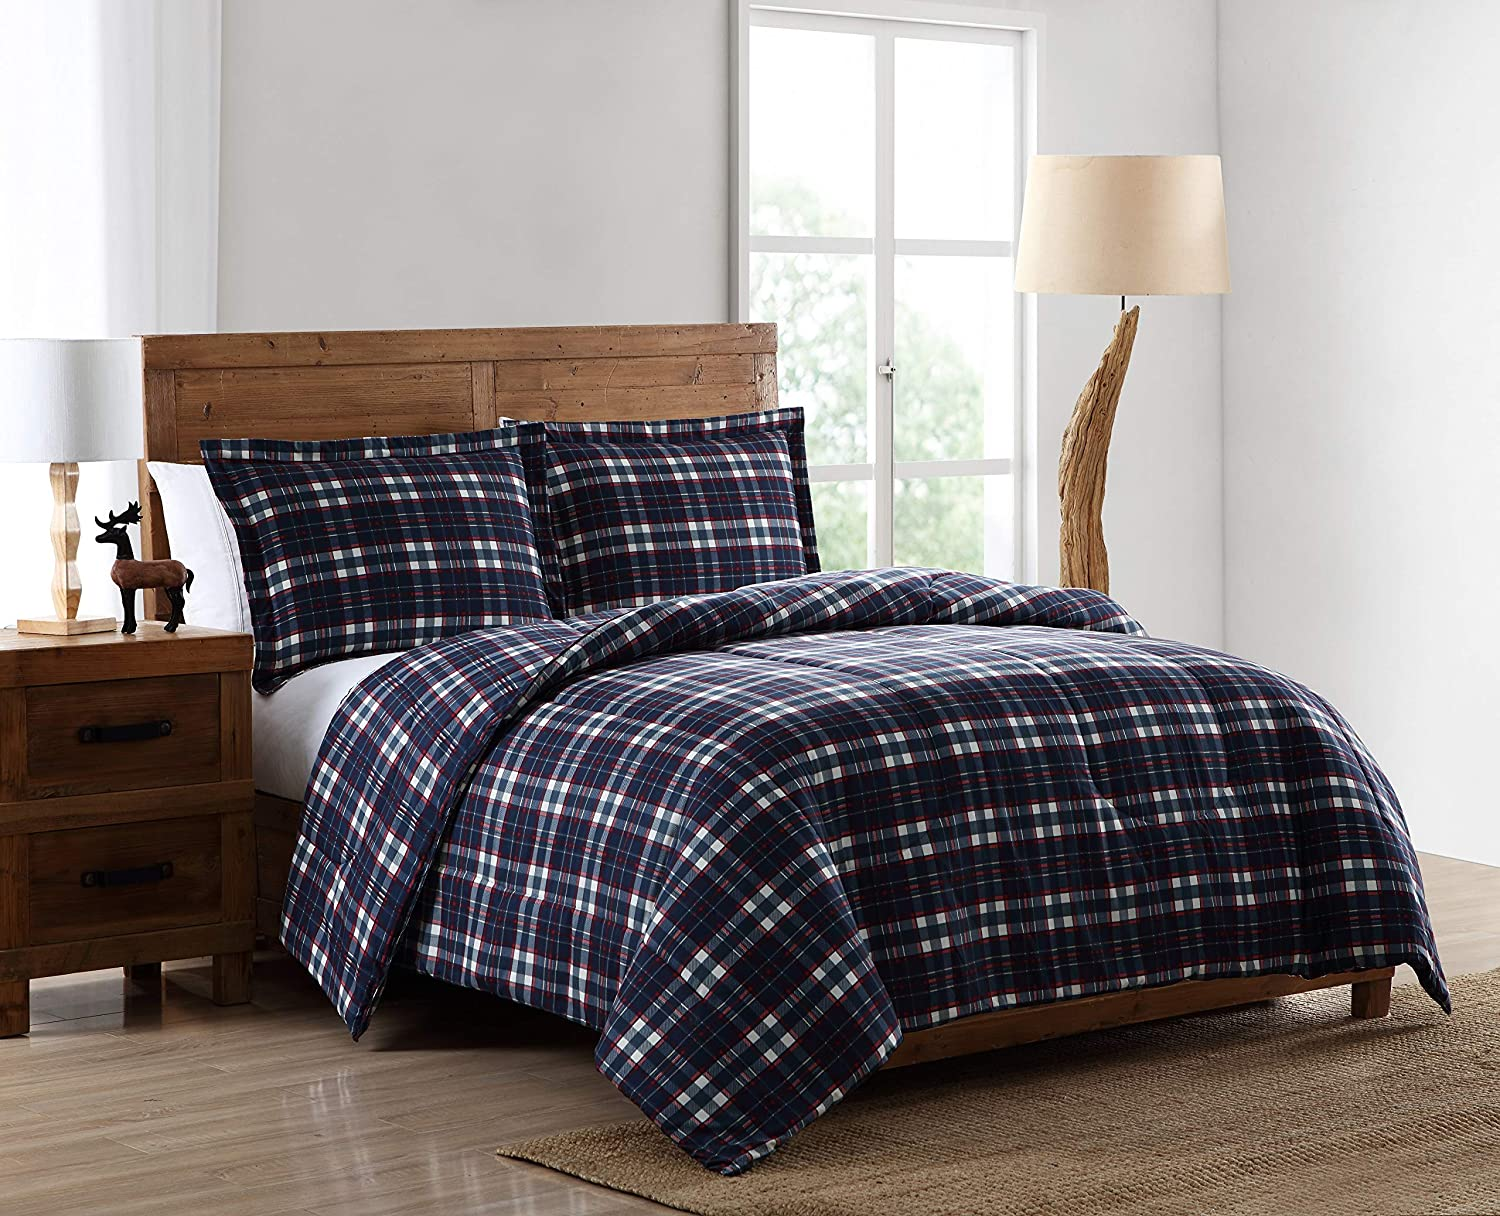 Premium Luxury Bed Spread Pine Creek Lodge Comforter Set Including Shams Cabins and Lodges Forest Lodge, Twin Rustic Southwestern Style Perfect for Hunters